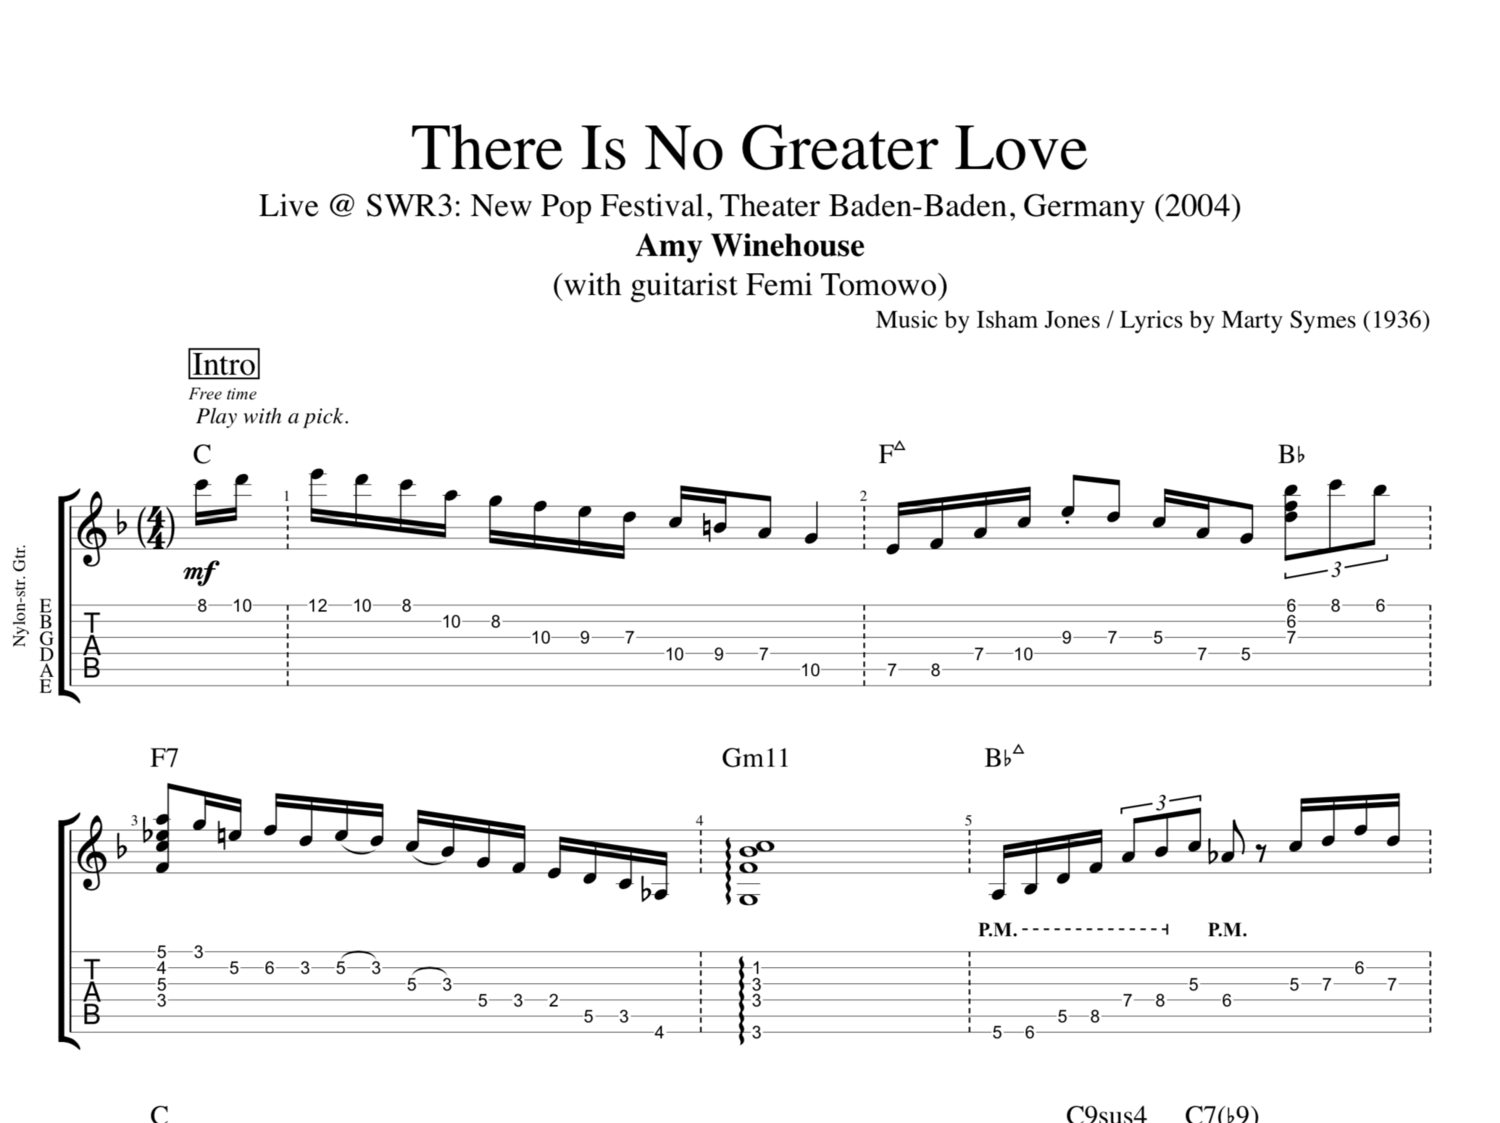 There Is No Greater Love Live By Amy Winehouse Guitar Tab